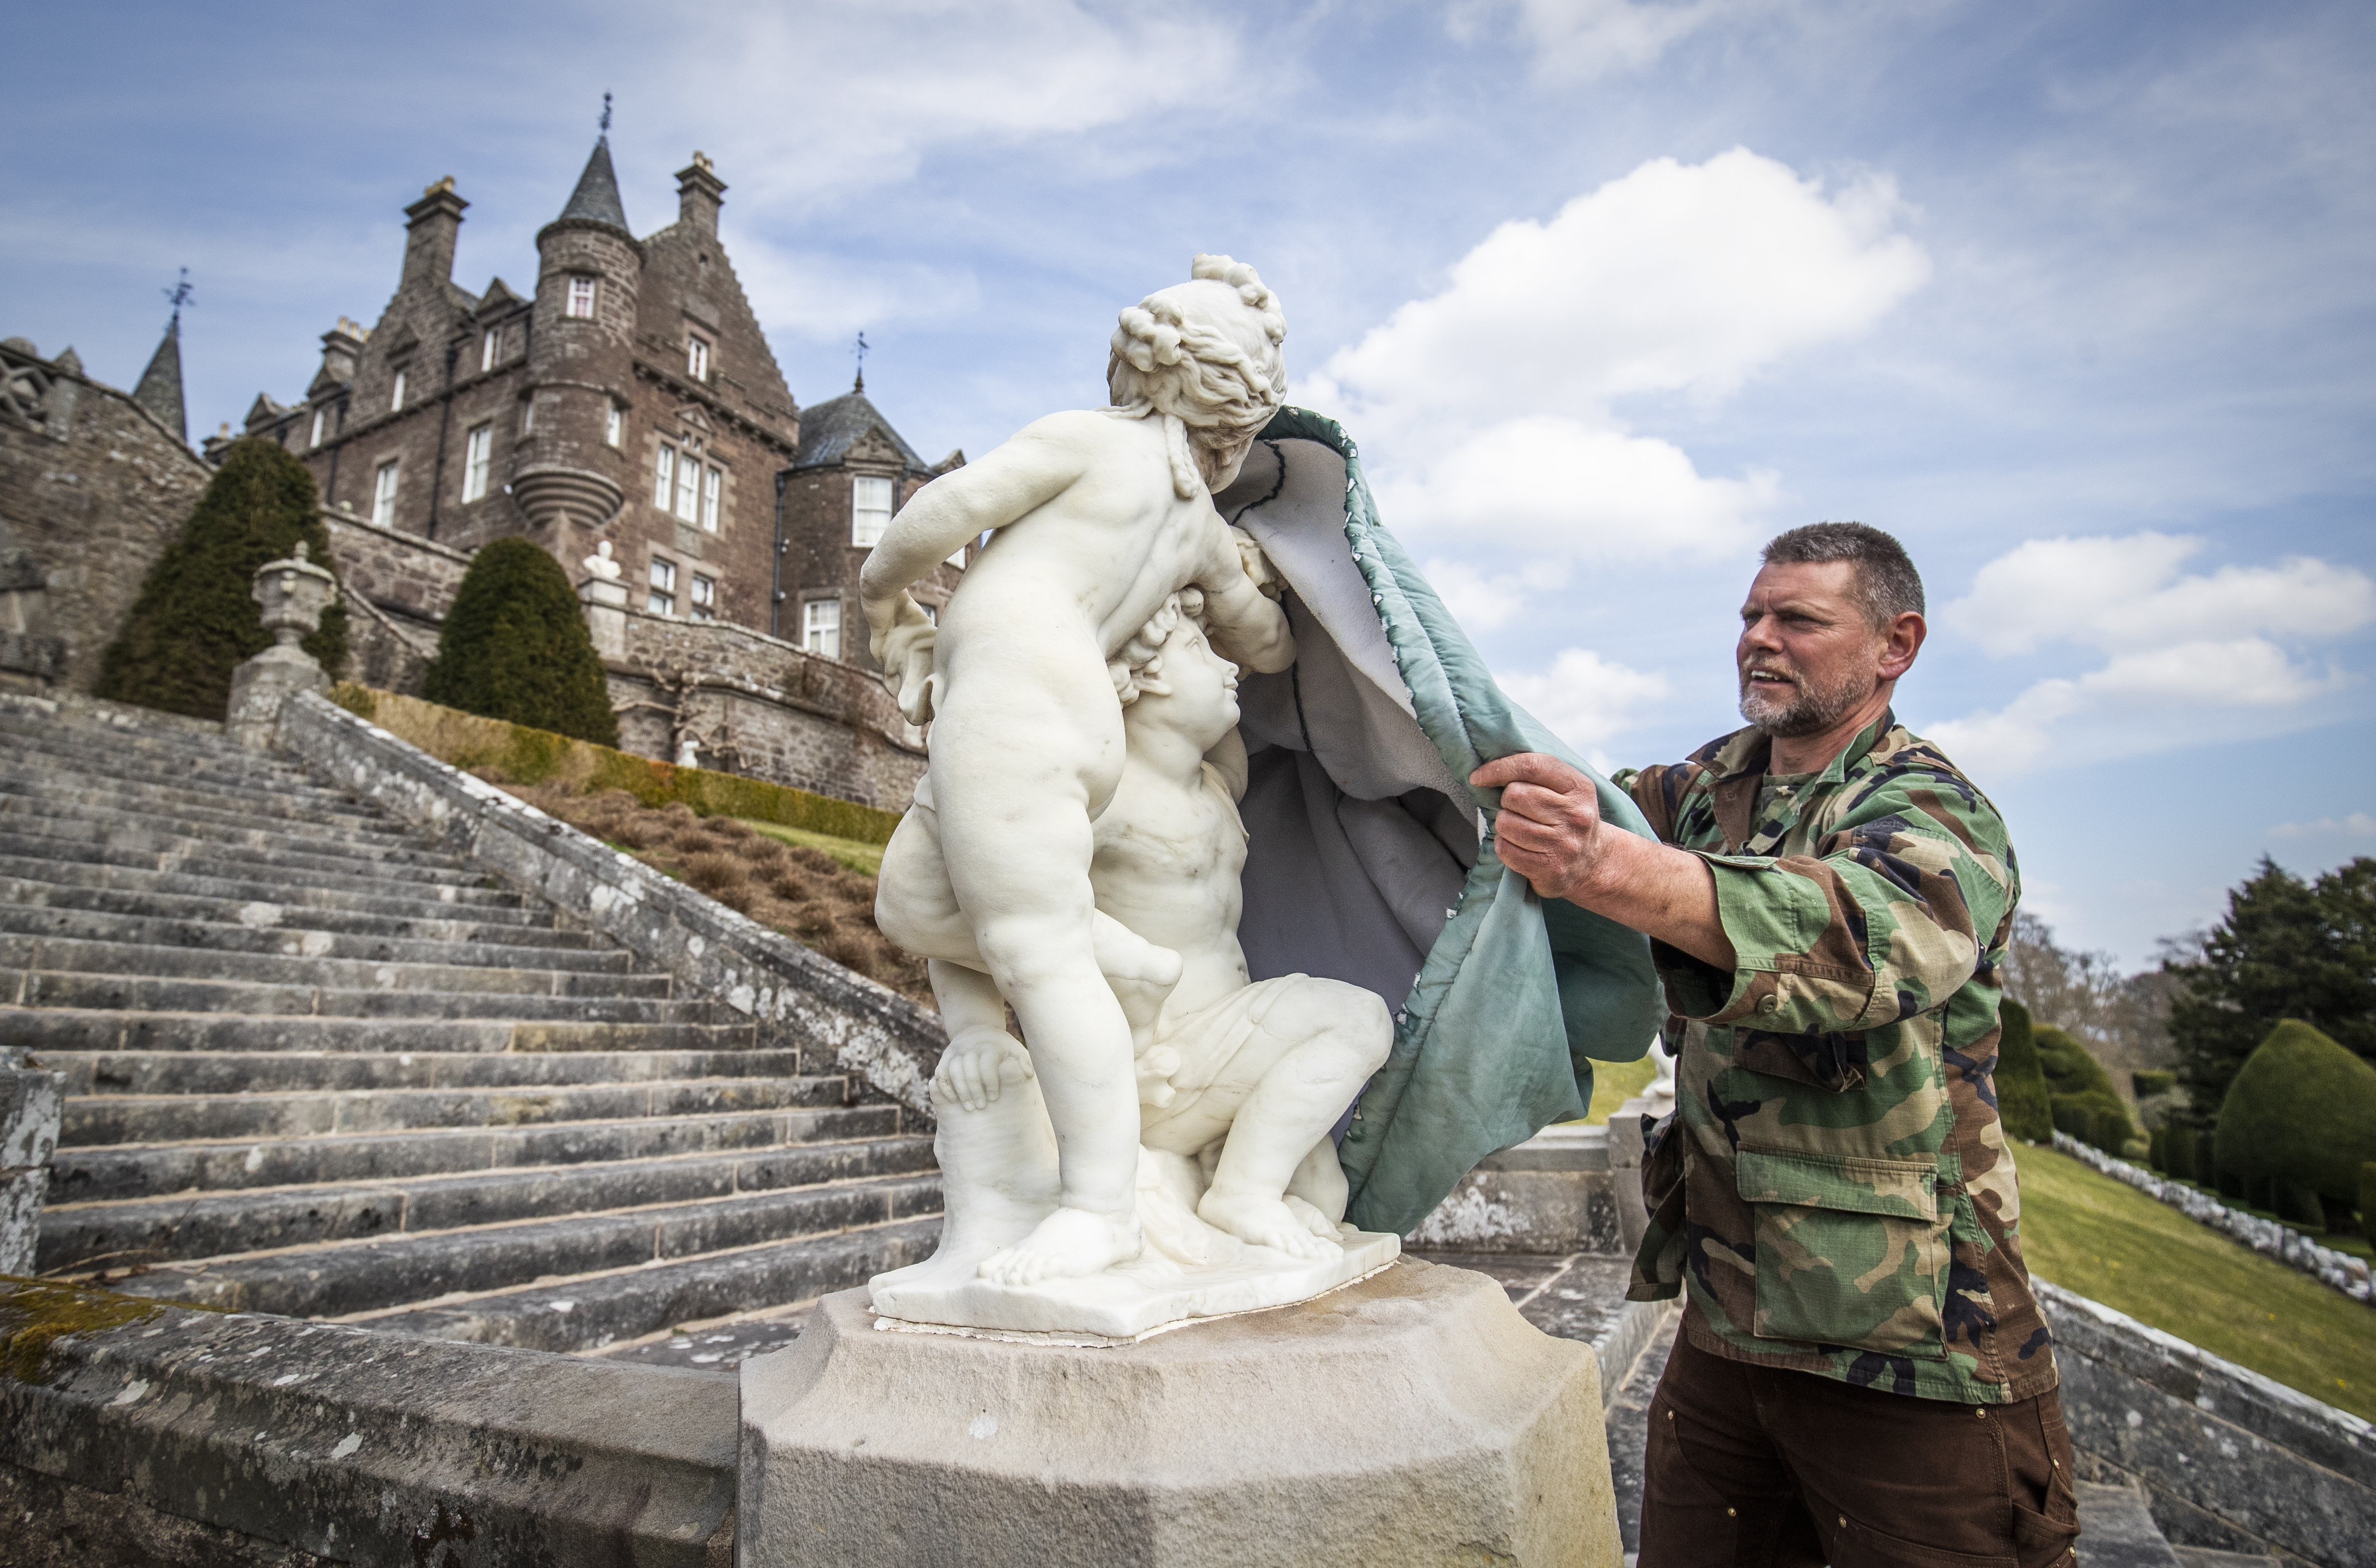 <p>Gardener Andy Ayre unwraps the collection of marble statues from their winter coverings at Drummond Castle Gardens in Perthshire, in preparation for the Gardens reopening to the public on Saturday May 1, for the first time since October 2019. The statues are carefully wrapped each autumn to protect them from the winter frosts and unwrapped and sprayed each spring. Picture date: Monday April 19, 2021.</p>